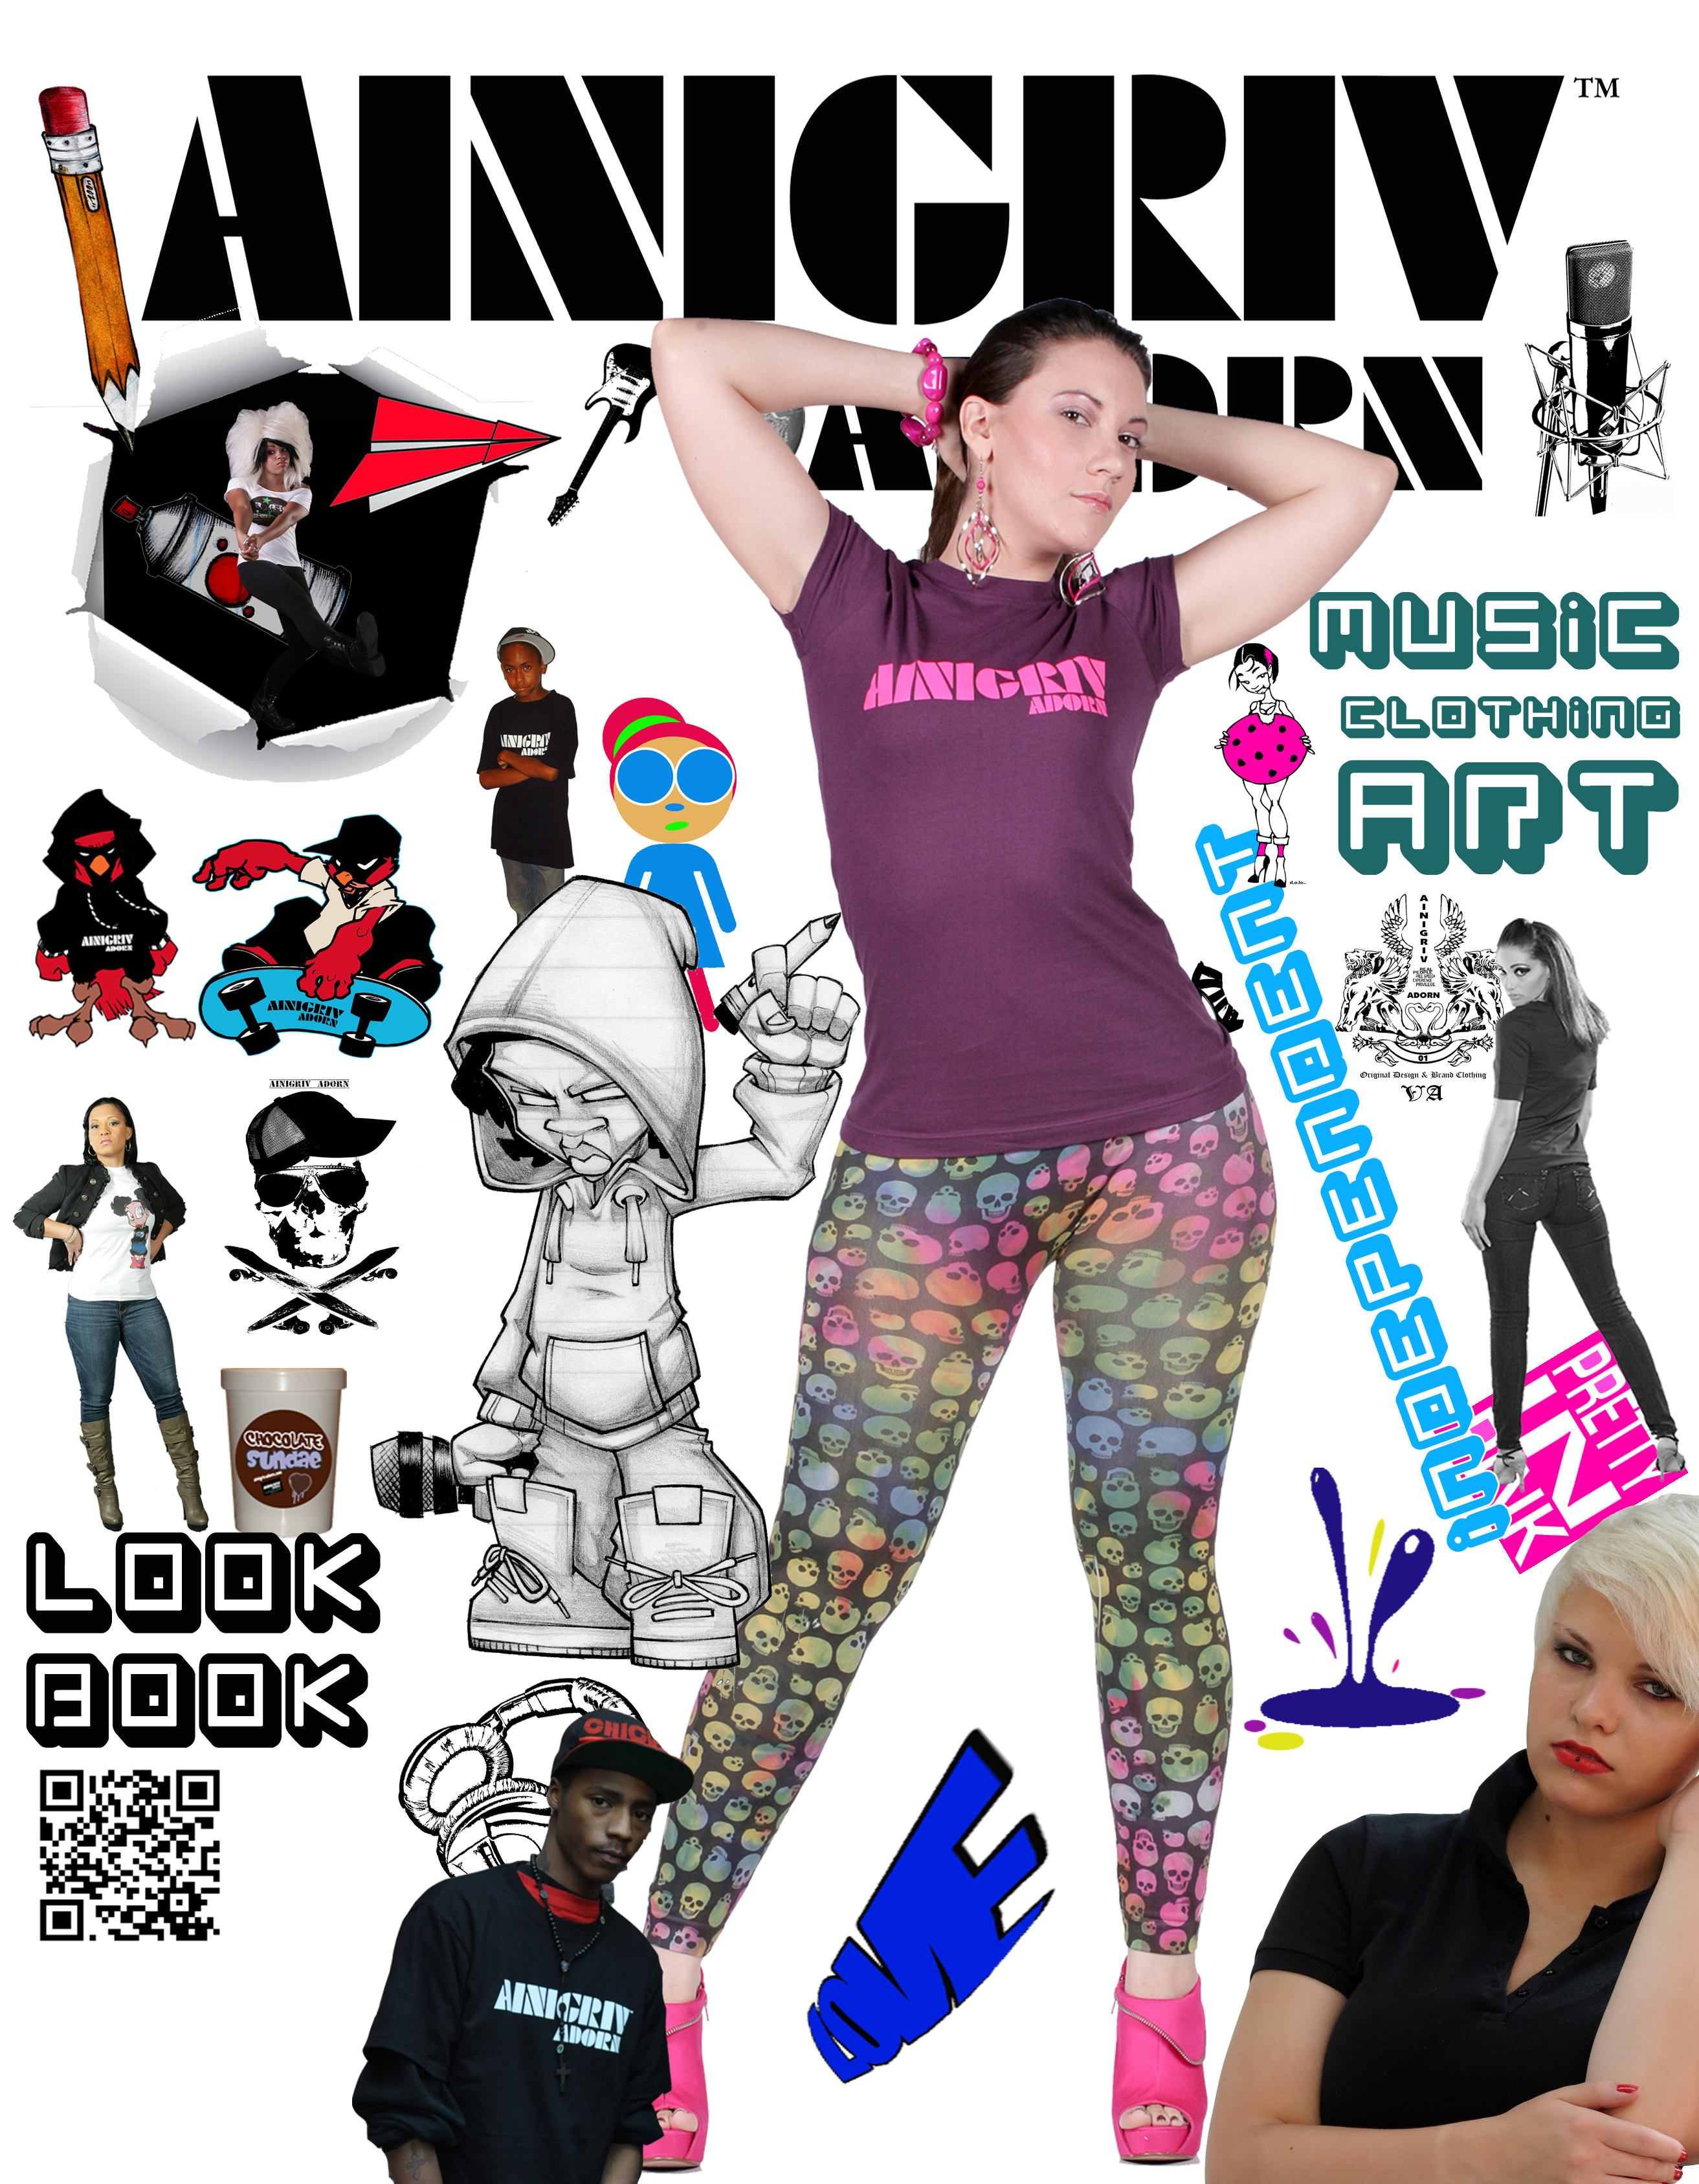 Ainigriv Adorn Look Book 3